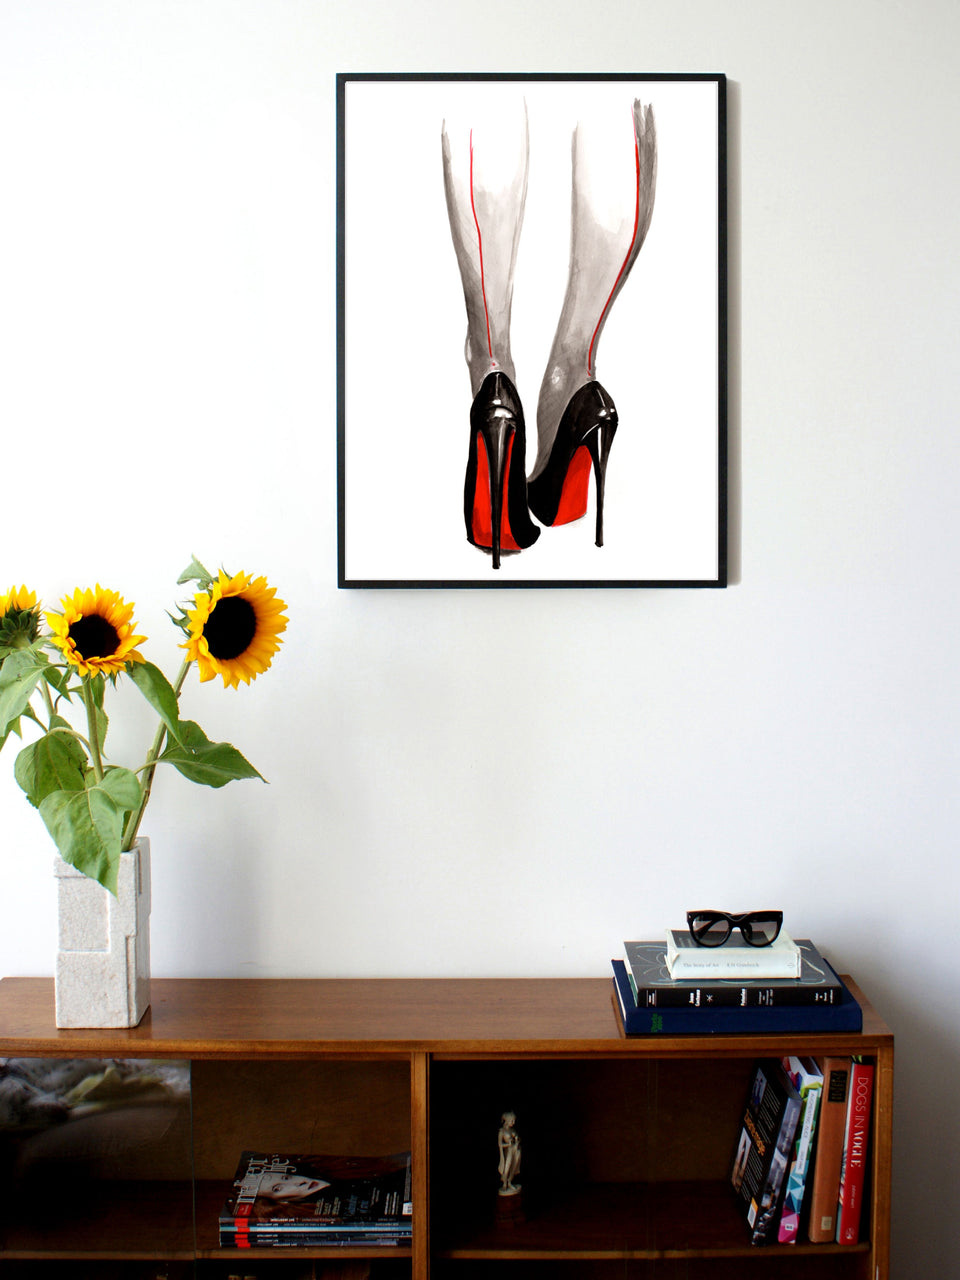 Fashion illustration print of Heels by Sjoukje Bierma - woman in Louboutin stilettos and seamed stockings - 60 x 80 cm framed